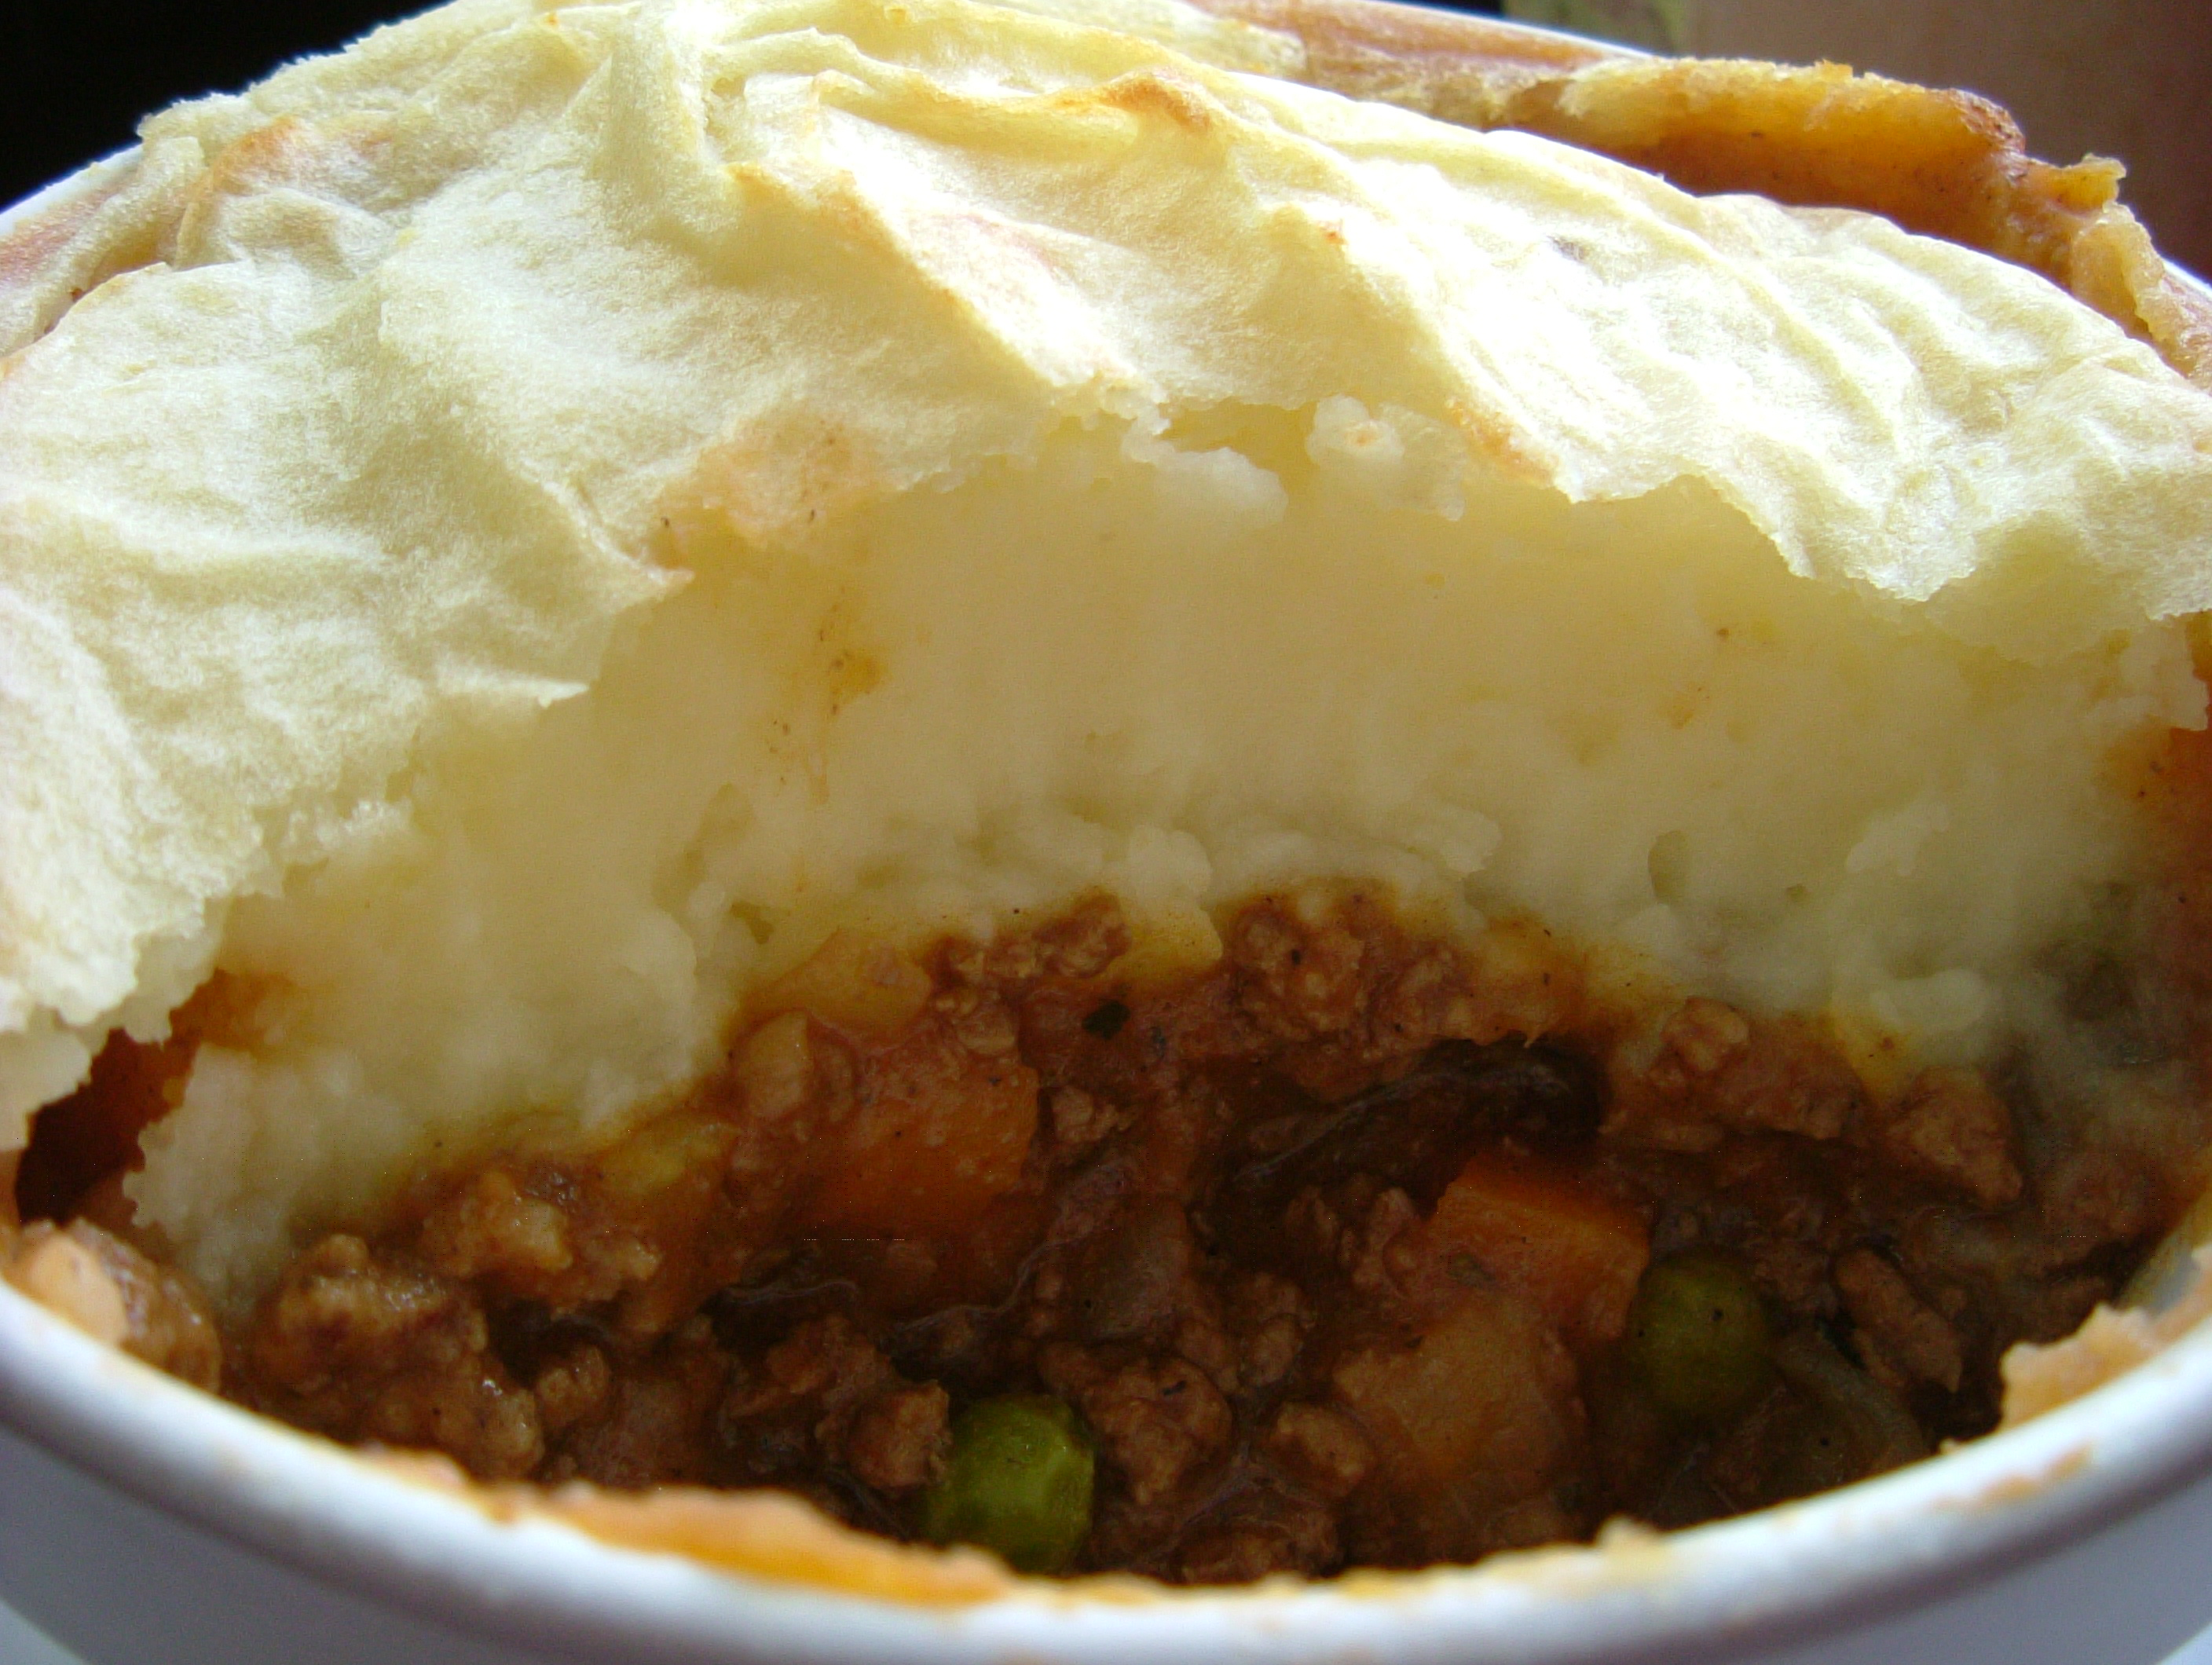 http://gluttonyforbeginhttp://gluttonyforbeginners.files.wordpress.com/2010/07/cottage-pie-030.jpgners.files.wordpress.com/2010/07/cottage-pie-030.jpg